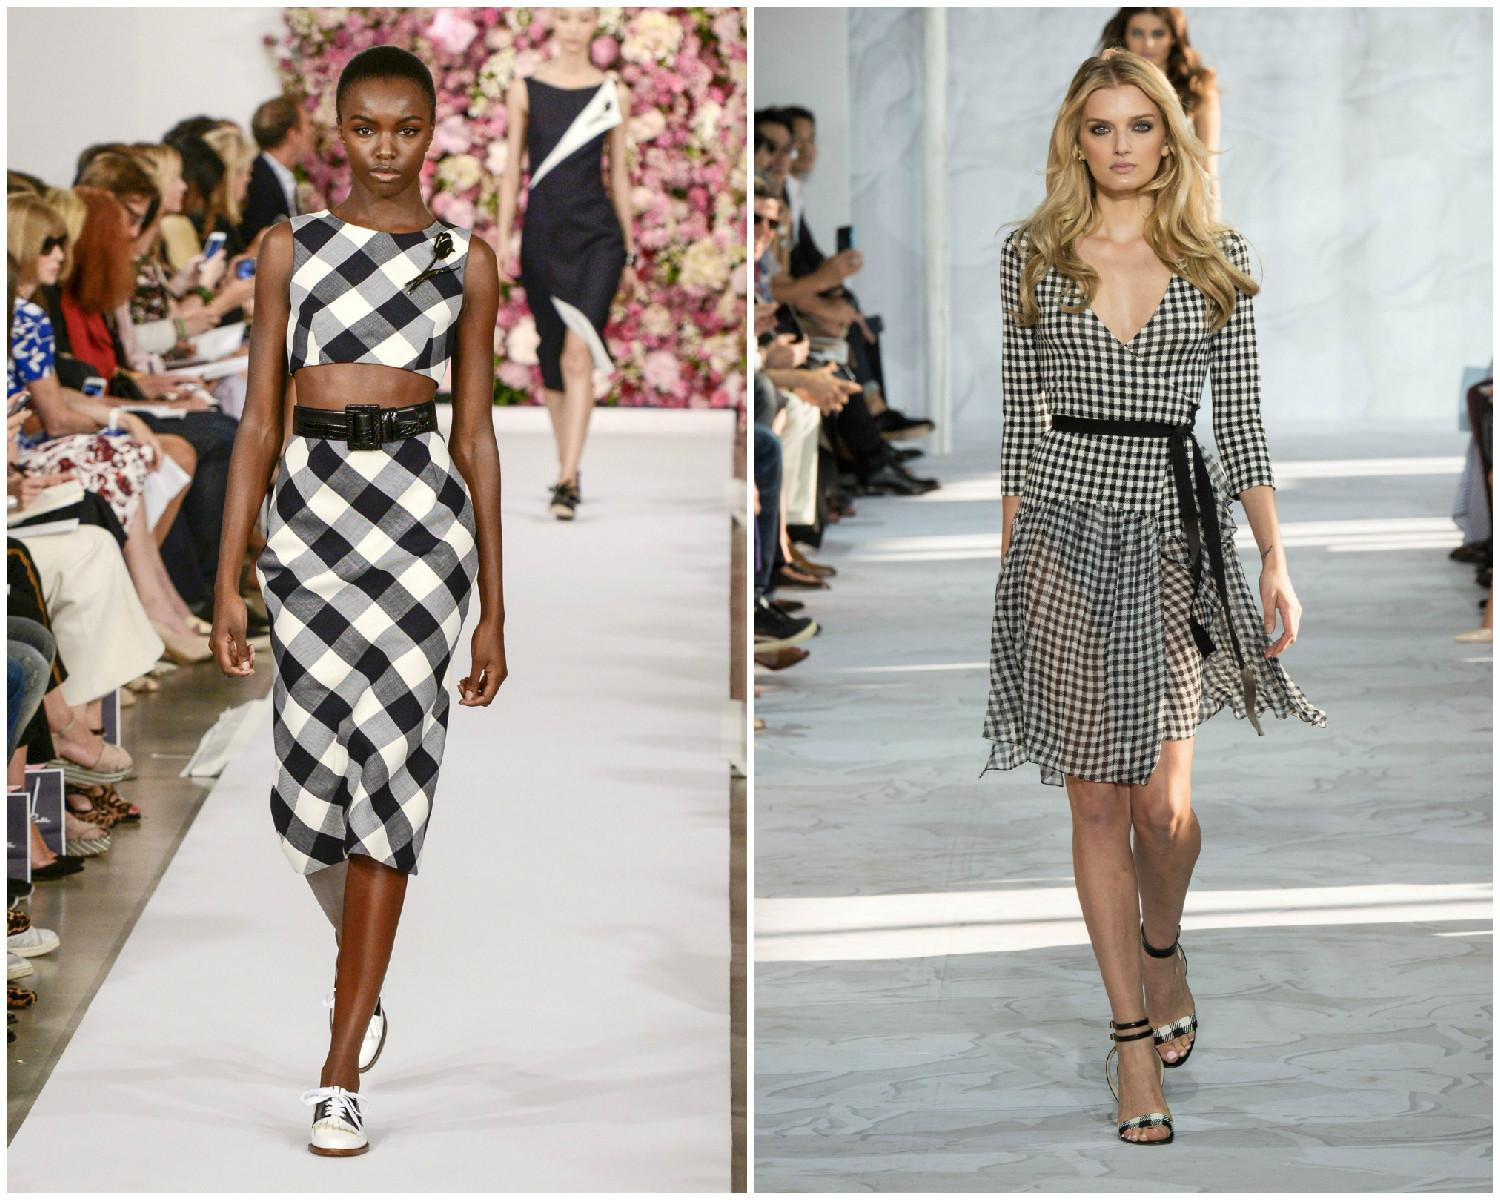 Trending: 10 stars who are doing gingham right: http://t.co/GUxWI7x9uz http://t.co/fCKM53h1Mw